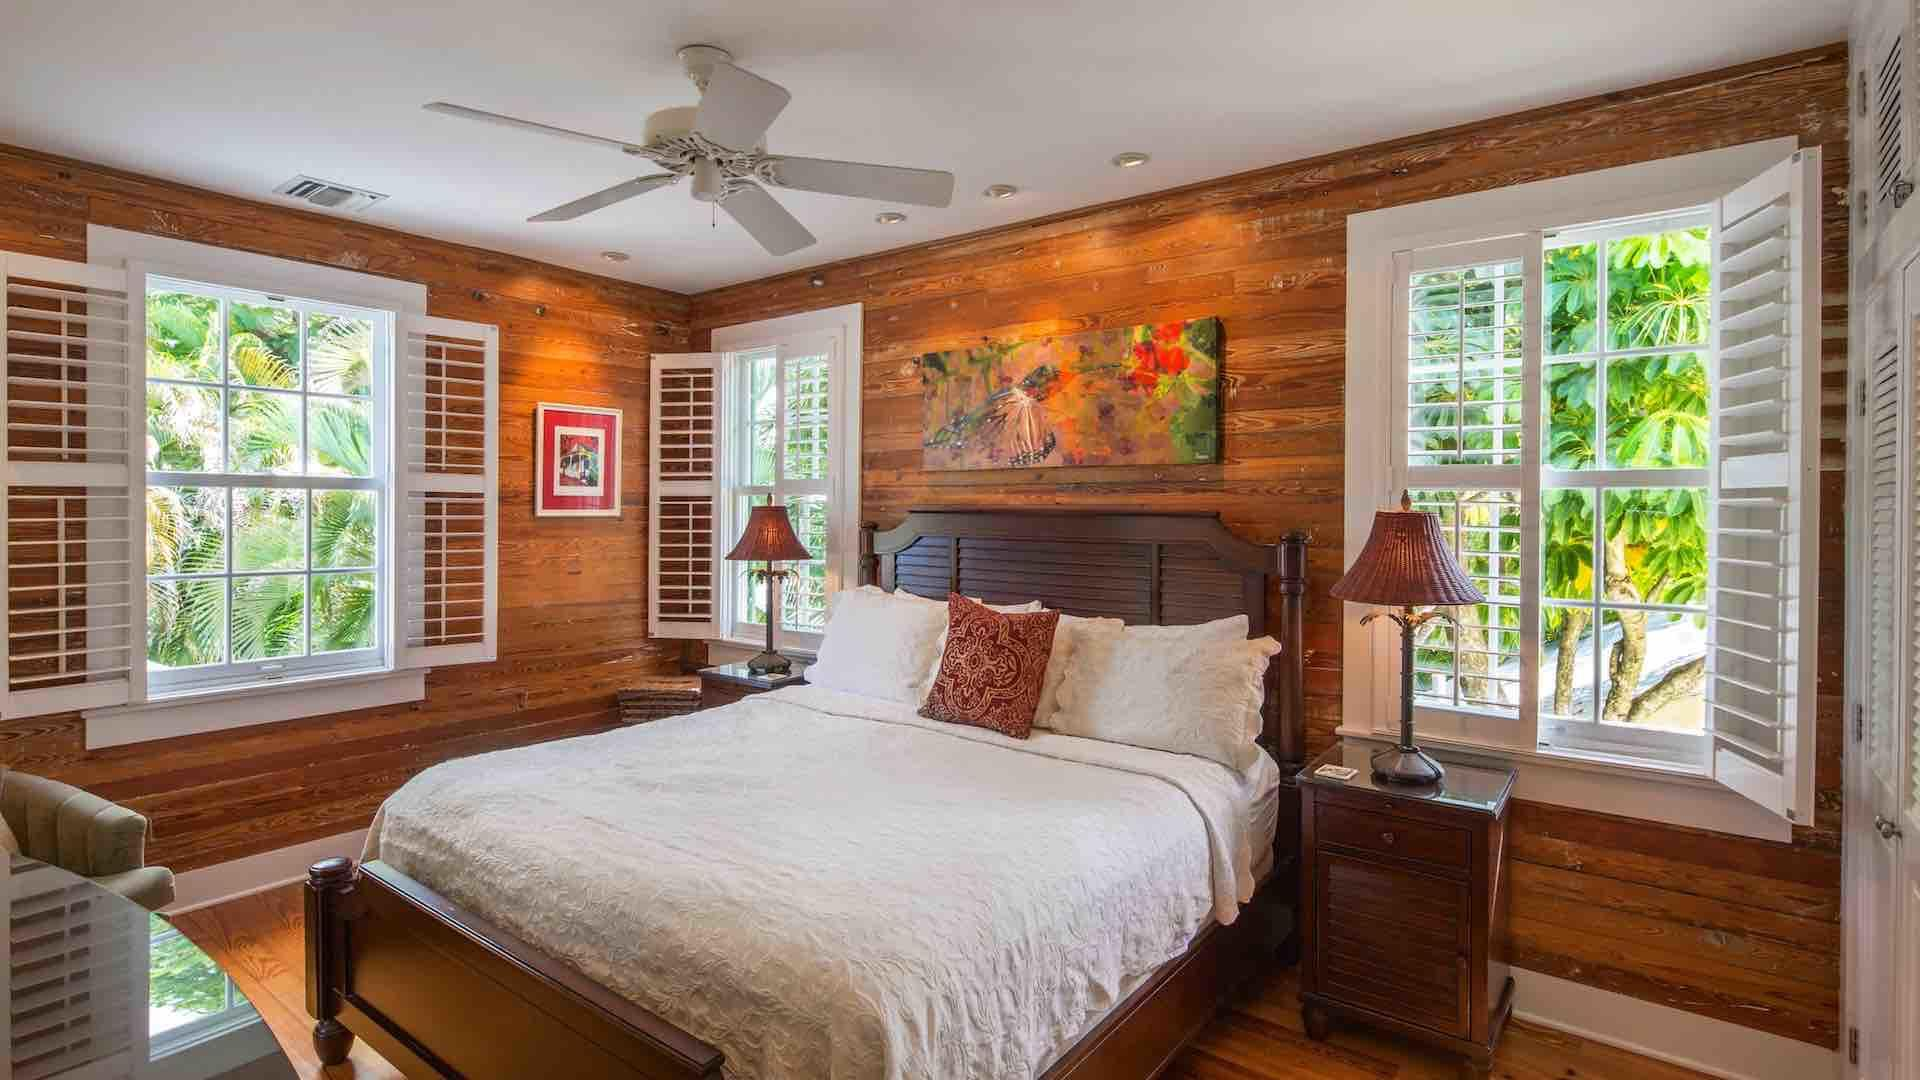 The master bedroom has a very comfortable King bed and elegant artwork…